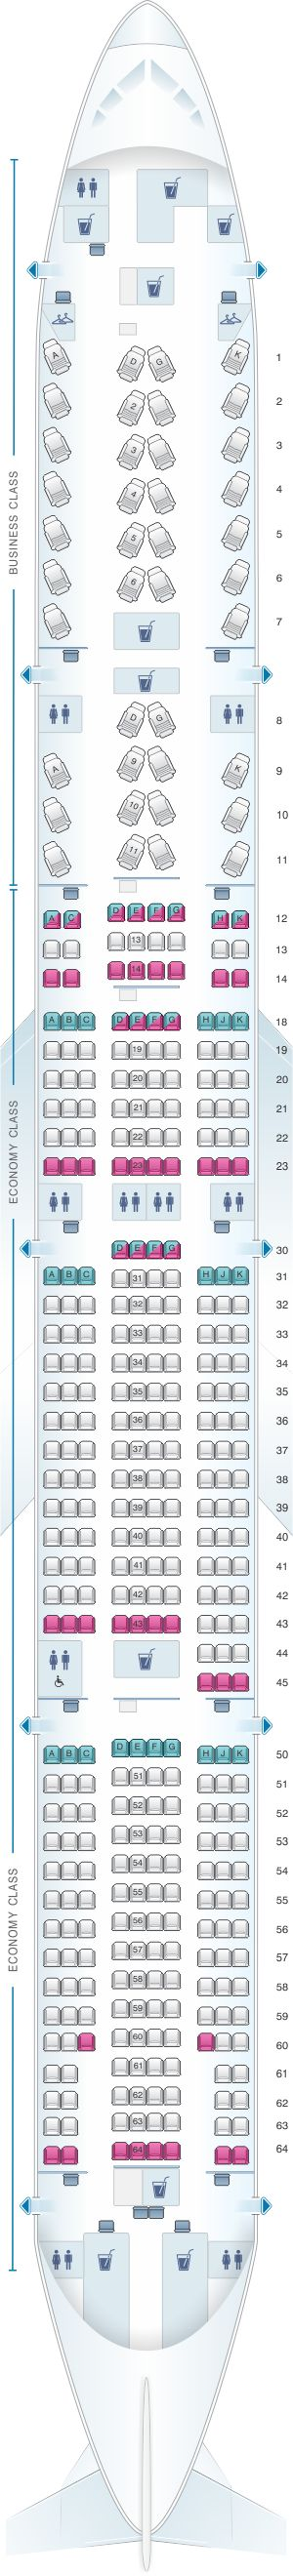 Seat Map Air Canada Boeing B777 300ER (77W) North America Layout 1